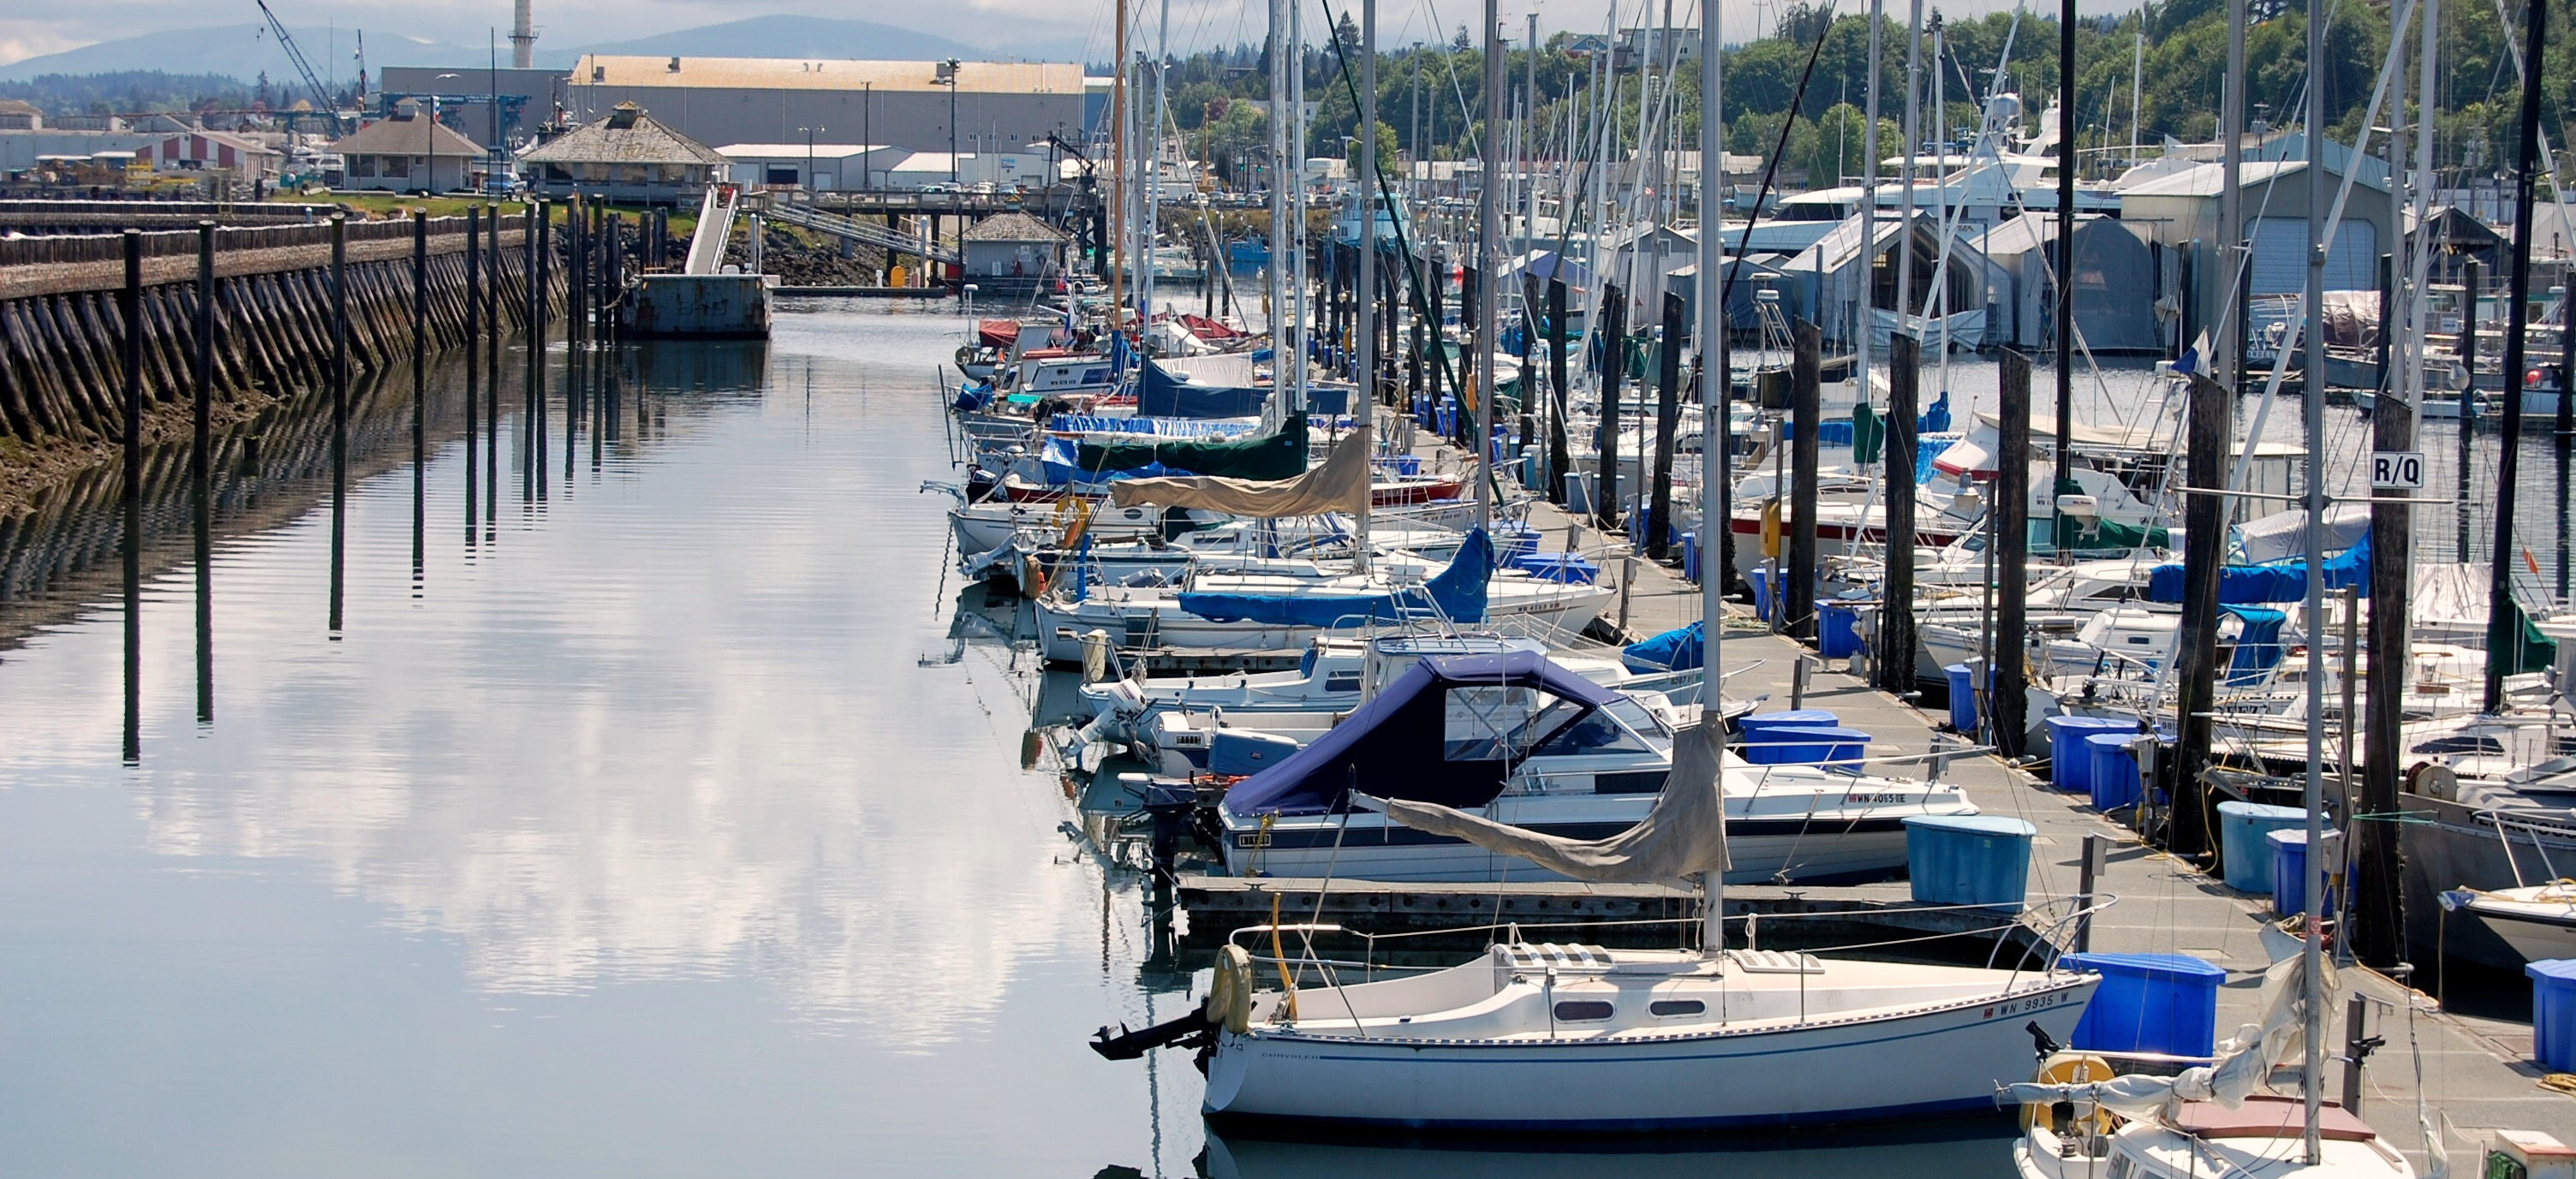 99_Sailboats_in_Marina1.jpg